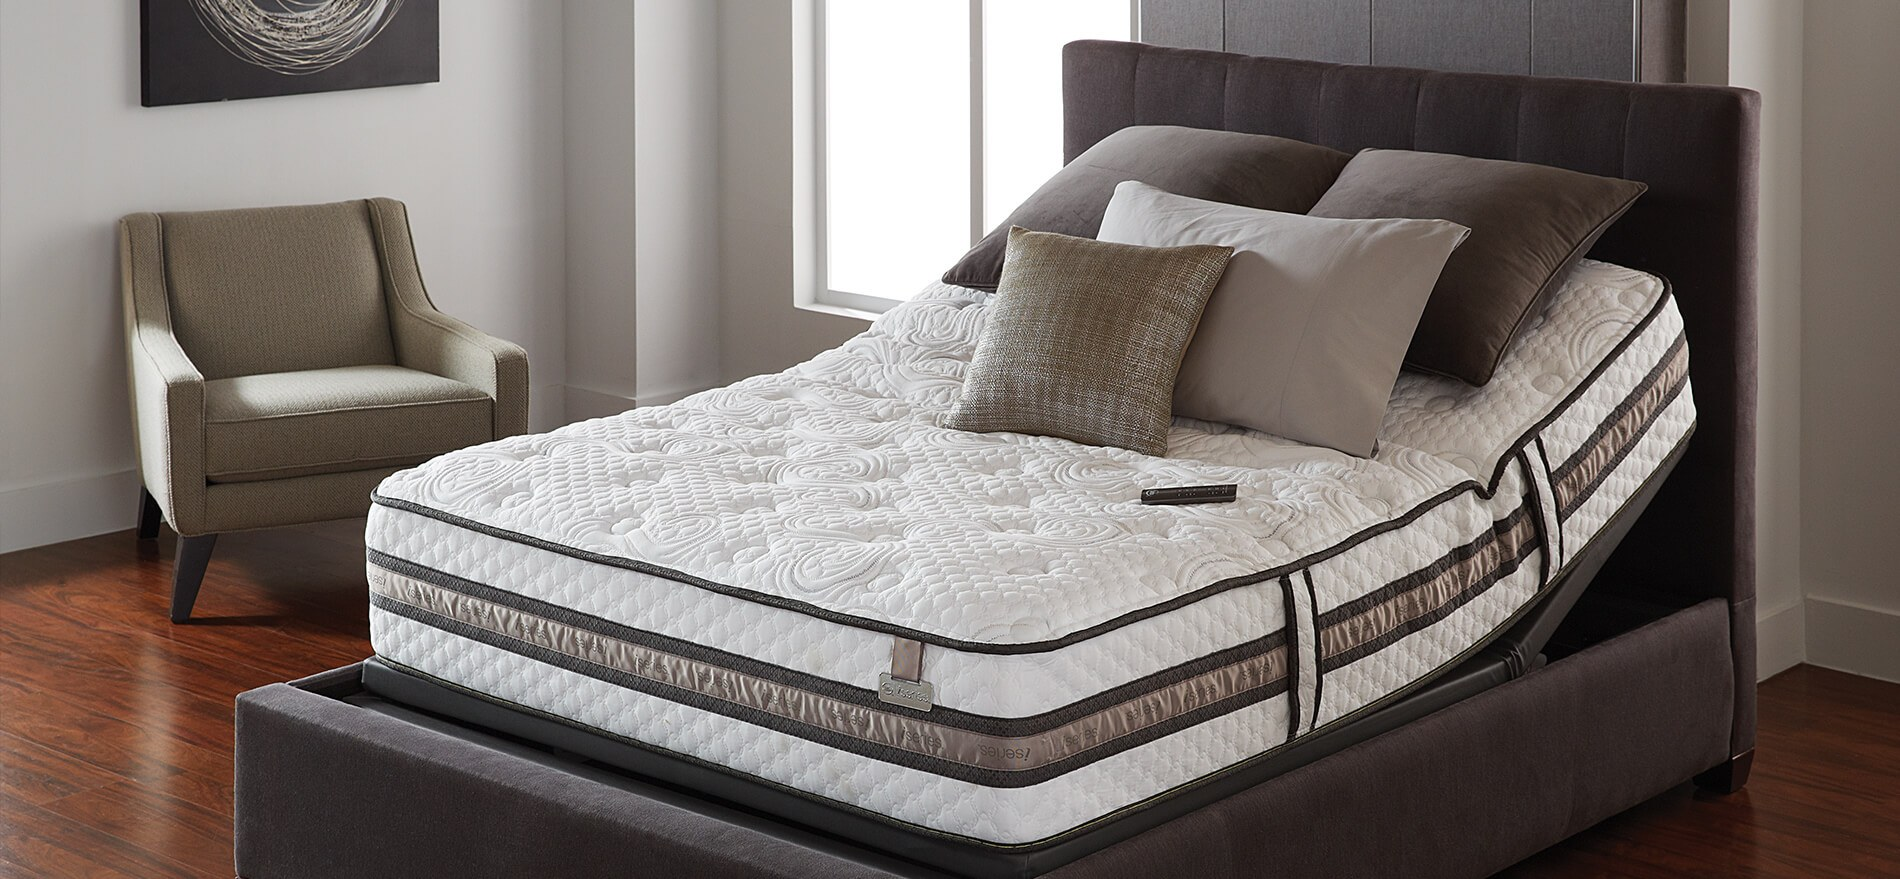 Quality Mattress from Dreams